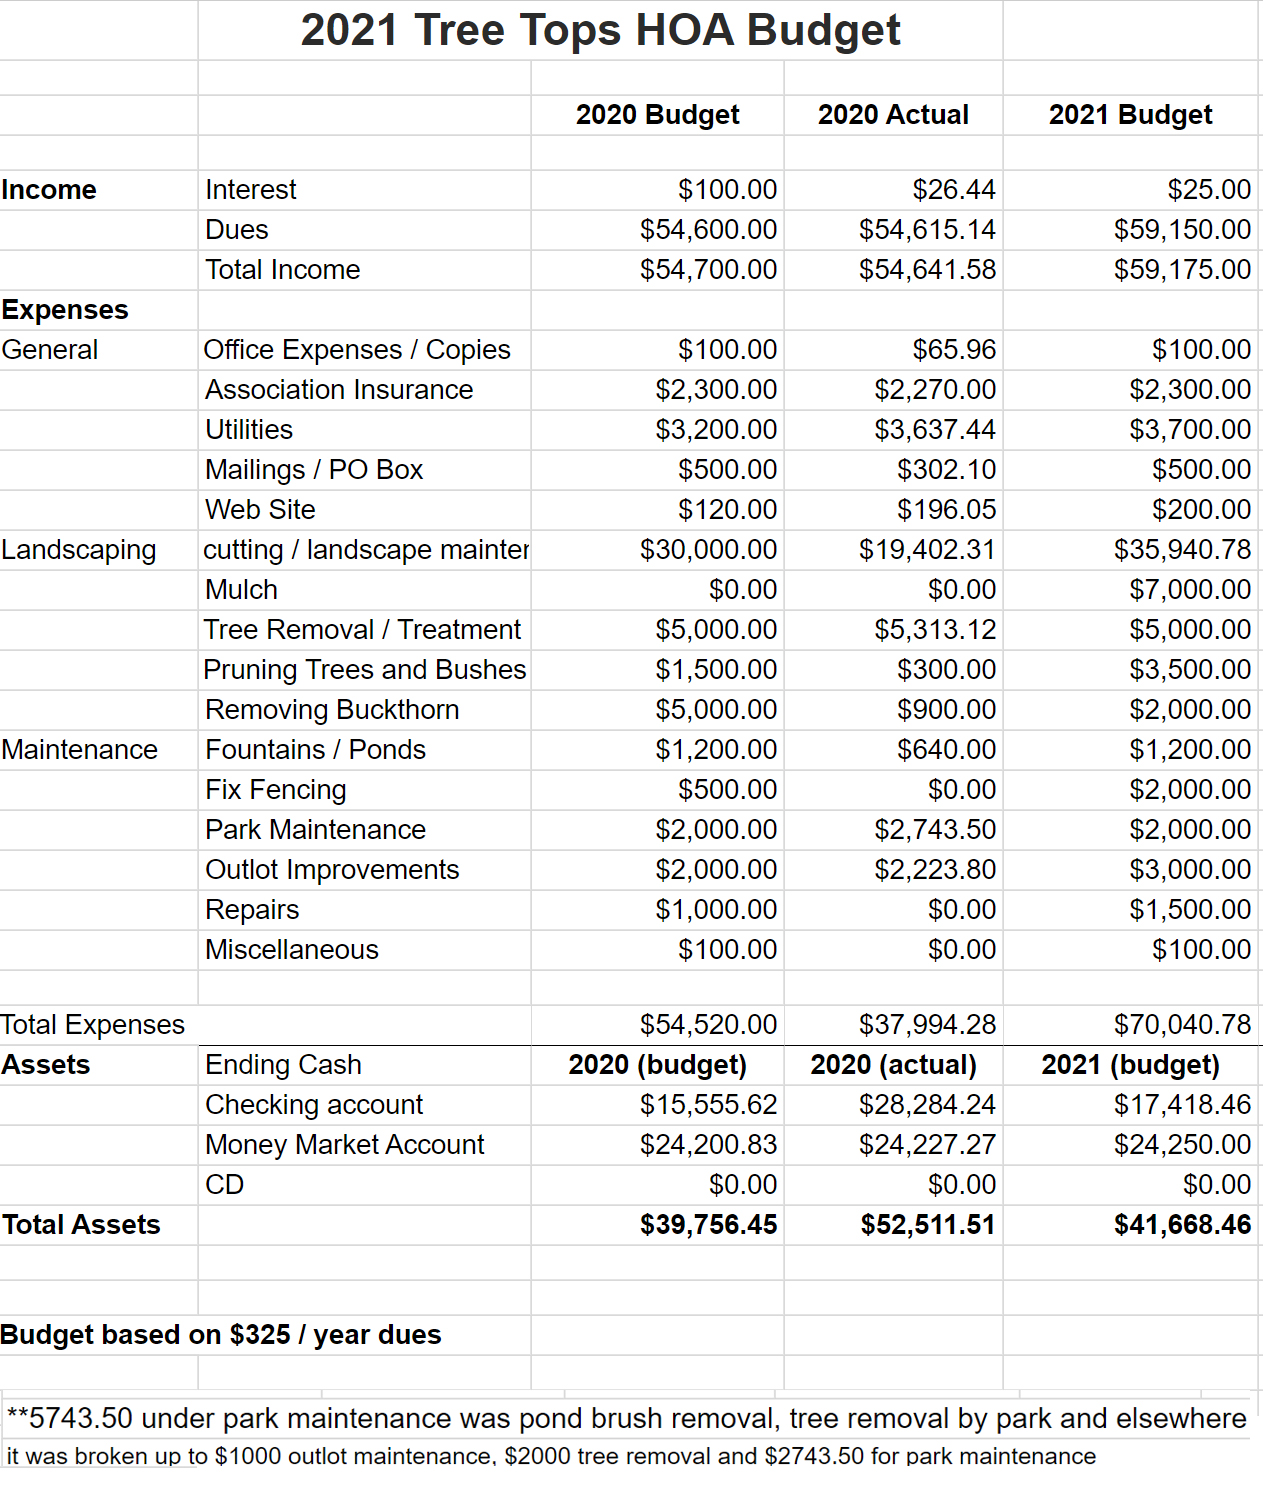 Tree Tops Proposed 2021 Budget